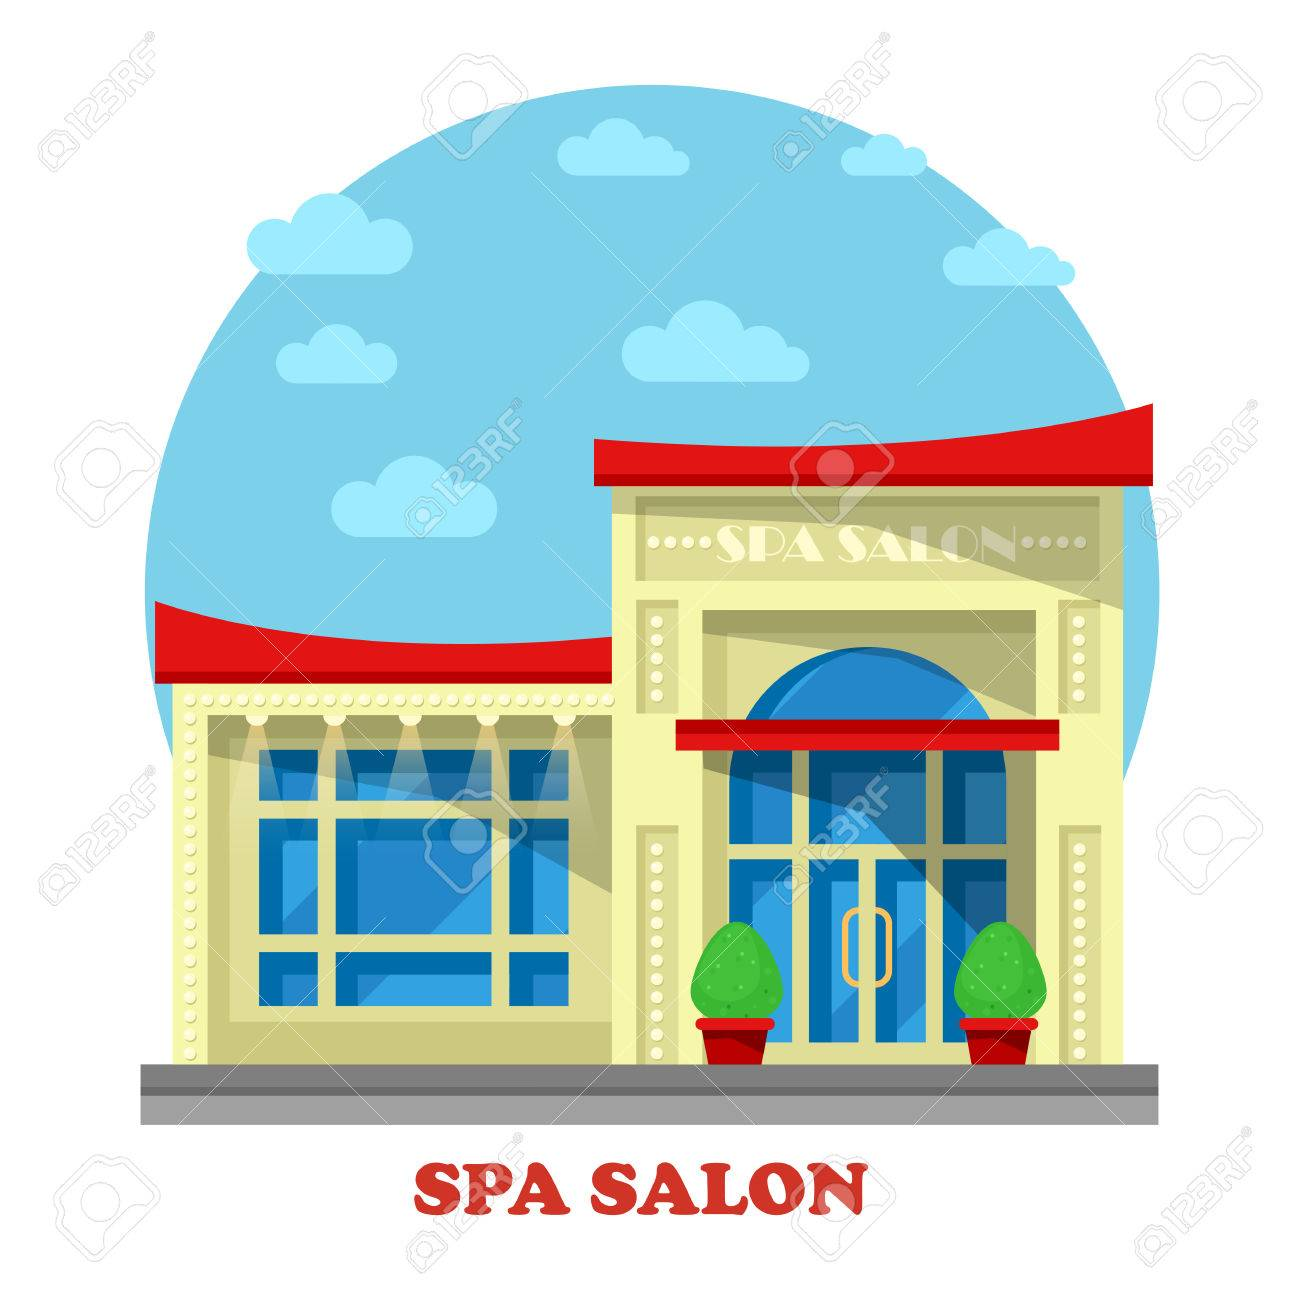 Spa Or Beauty Salon Parlor Parlour Building Construction For Massage And Peeling